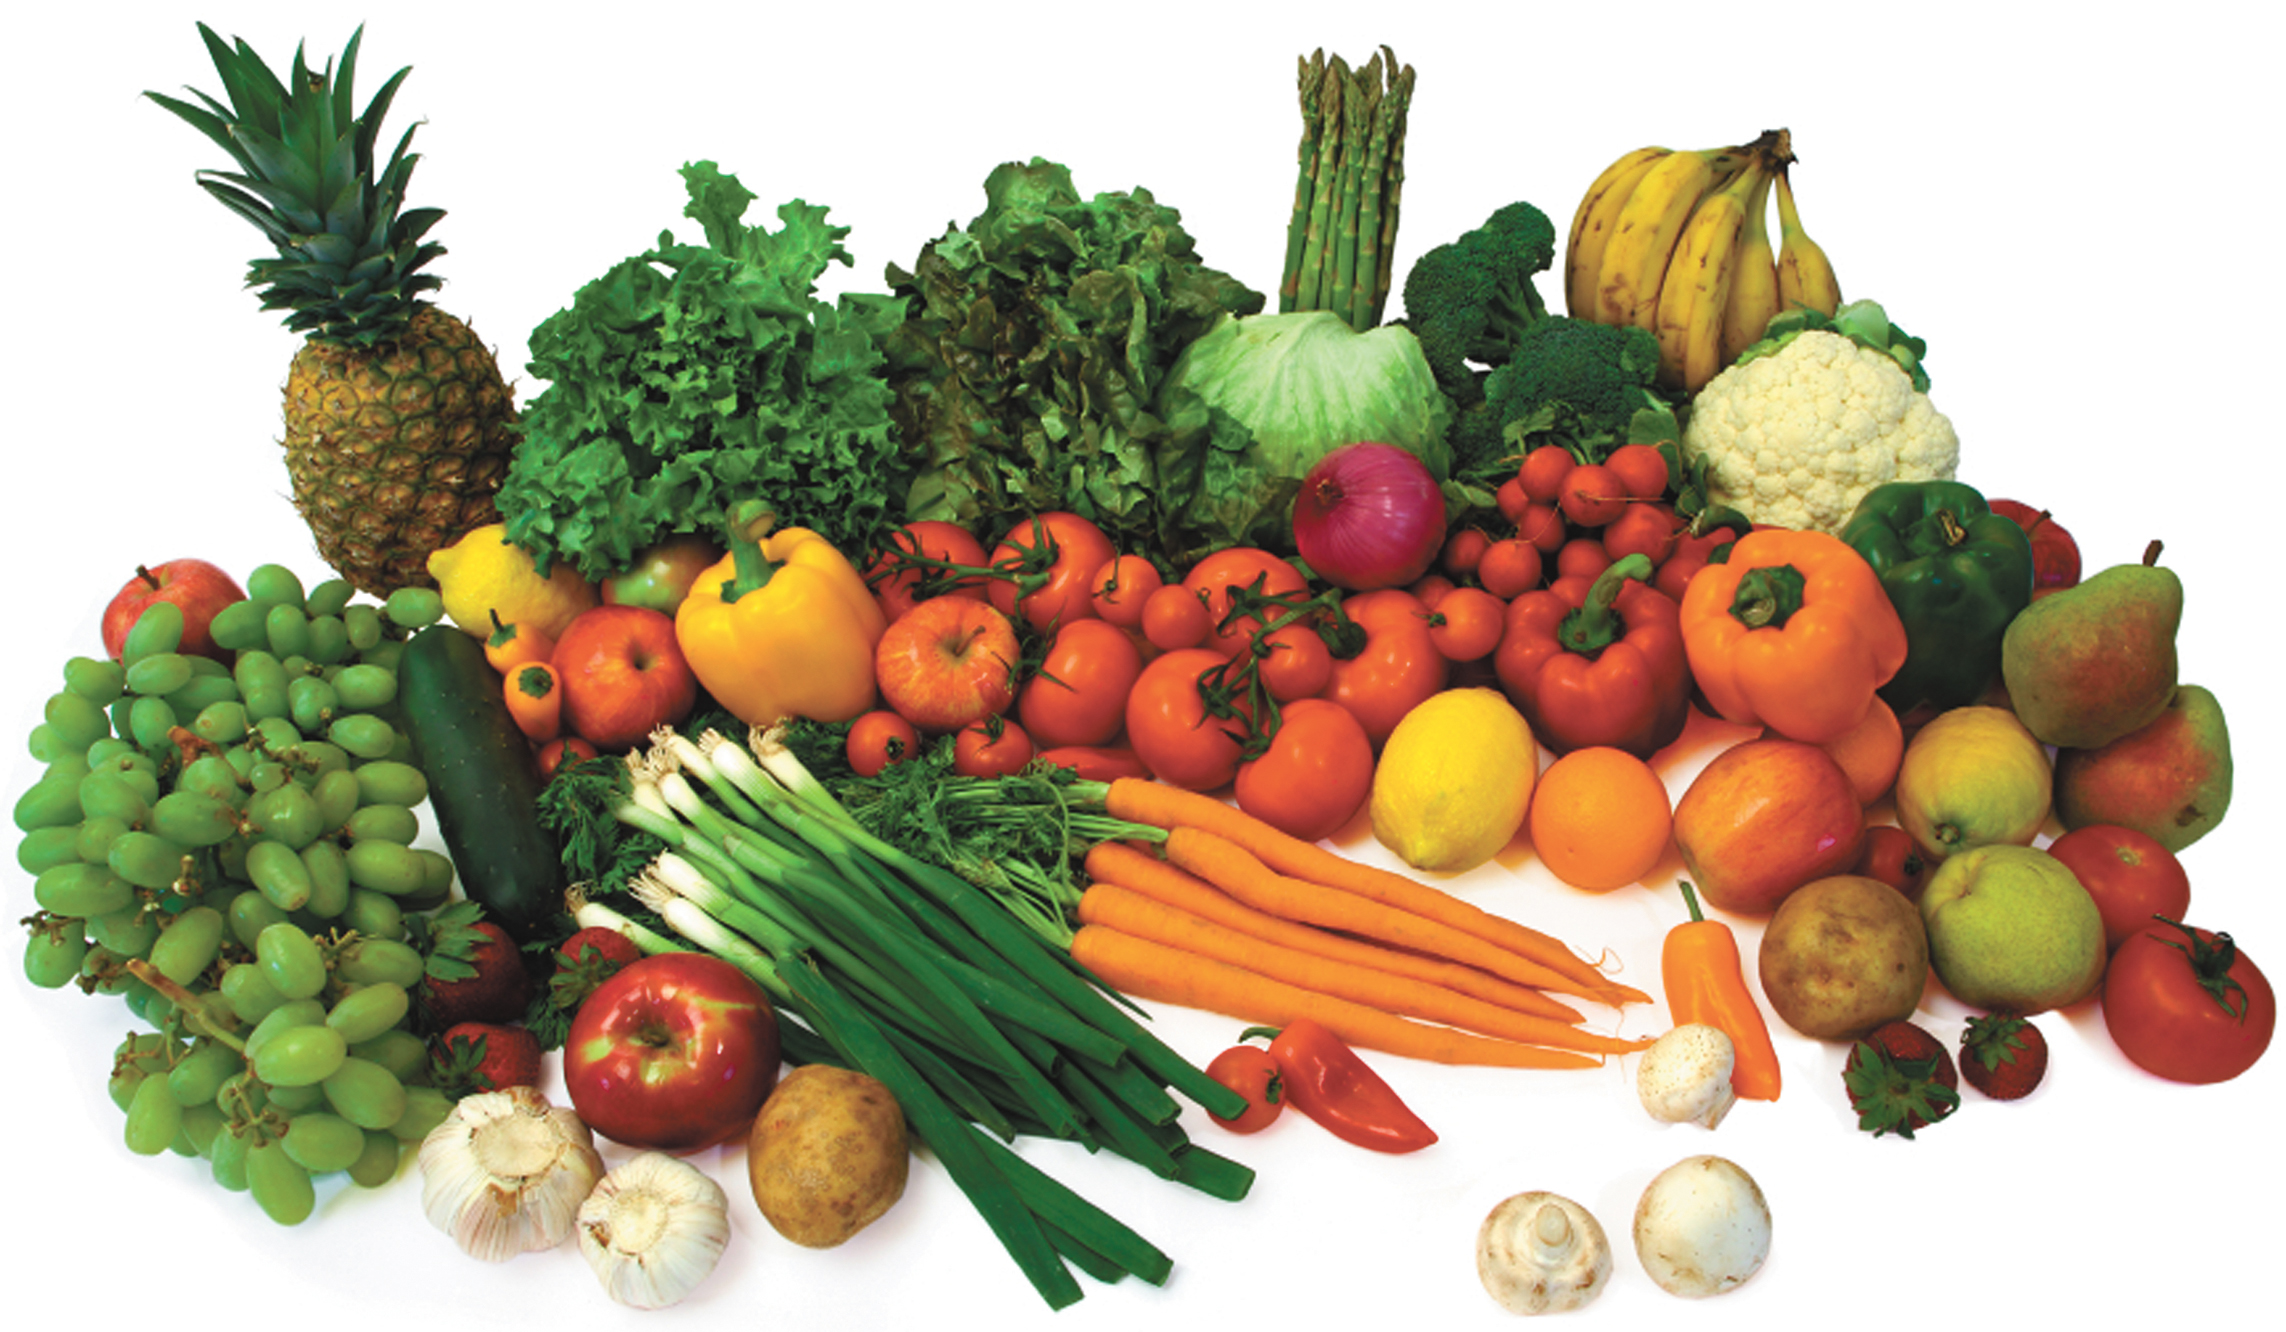 How to start eating a whole foods plant based diet